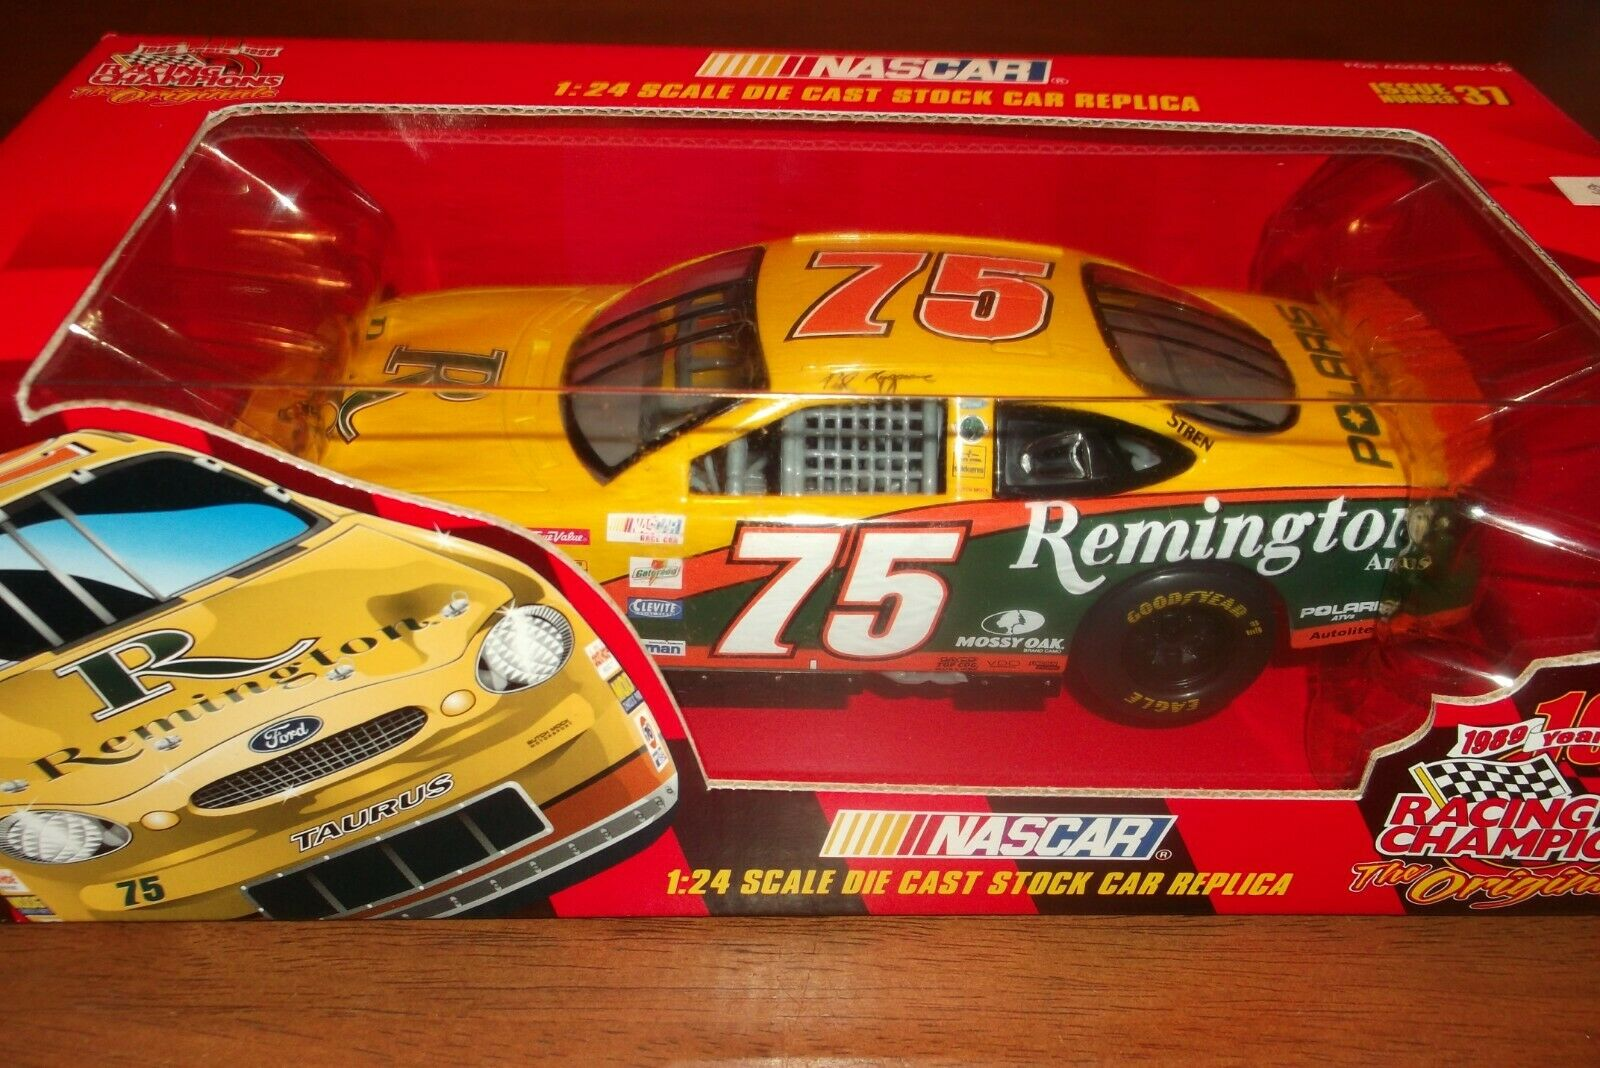 TED MUSGRAVE REMINGTON RACING CHAMPIONS 1 24 SCALE NIB (63